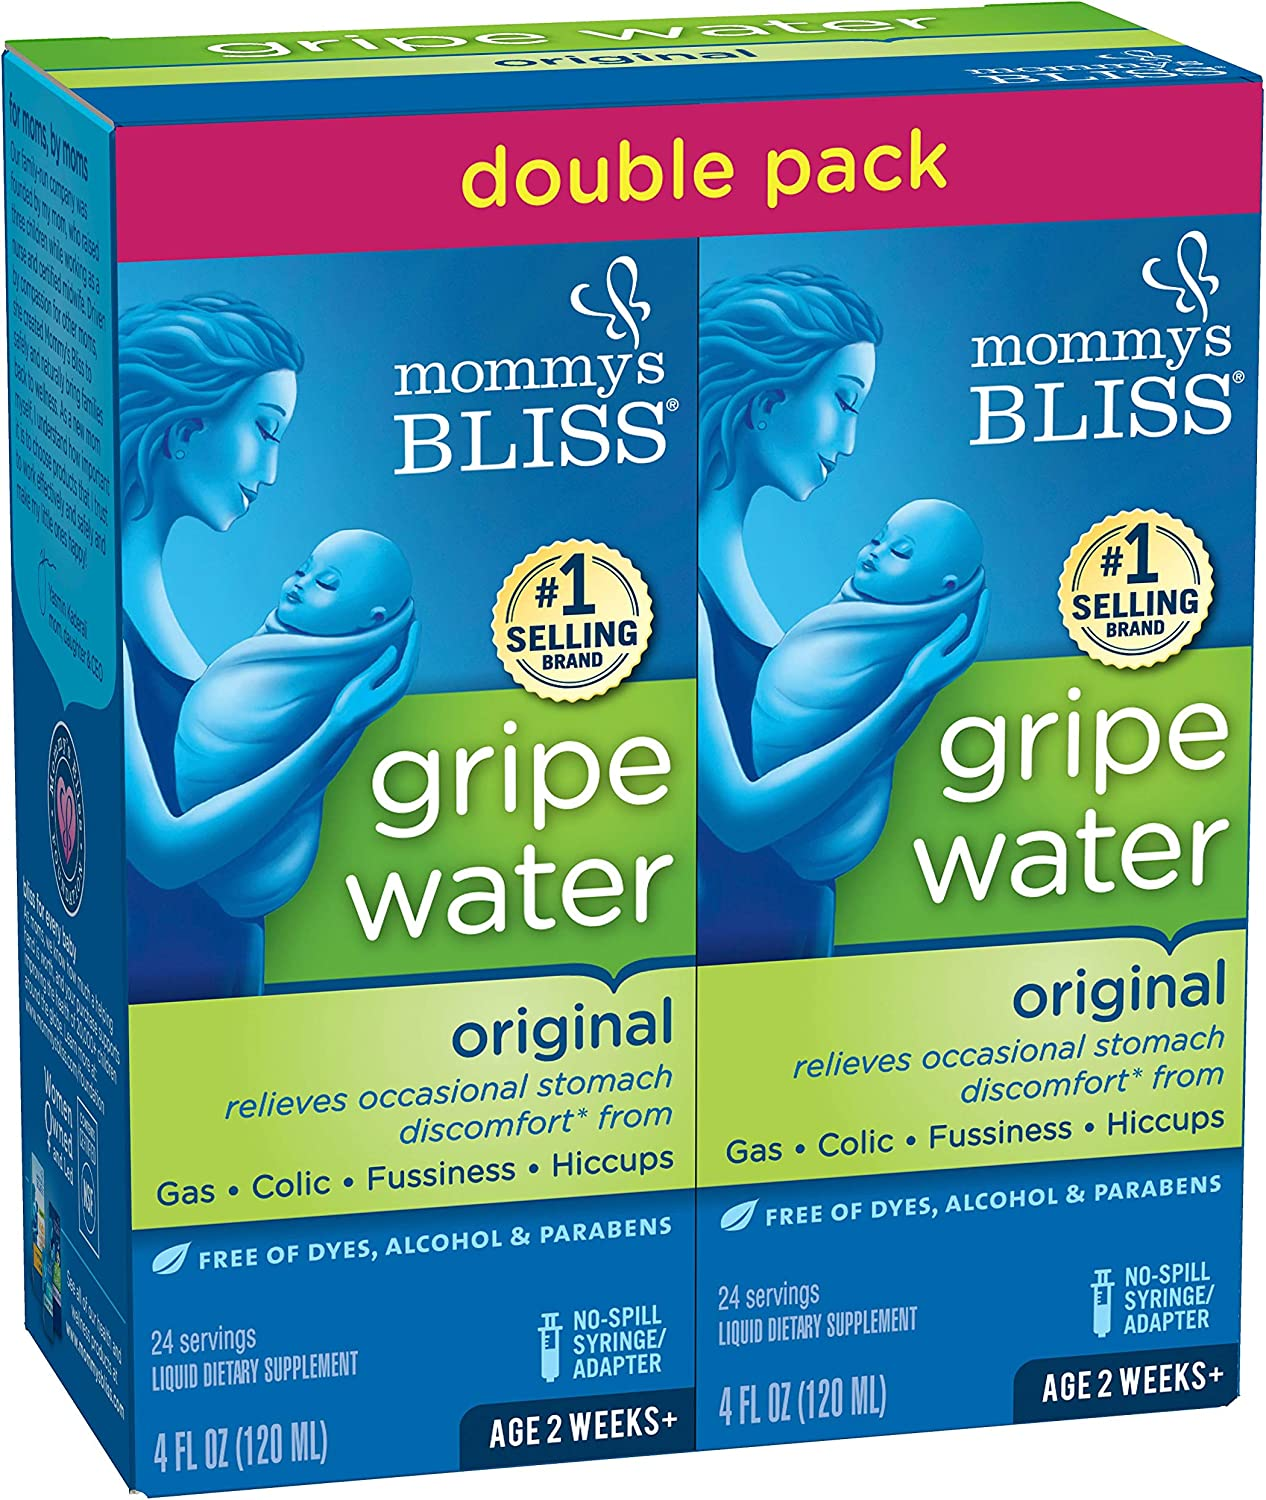 Mommy's Bliss Double Pack Gripe Water for Babies 2 Weeks & Up, Relieves Stomach Discomfort from Gas, Colic, Fussiness & Hiccups, 4 Fl Oz (Pack of 2), 8 Fl Oz